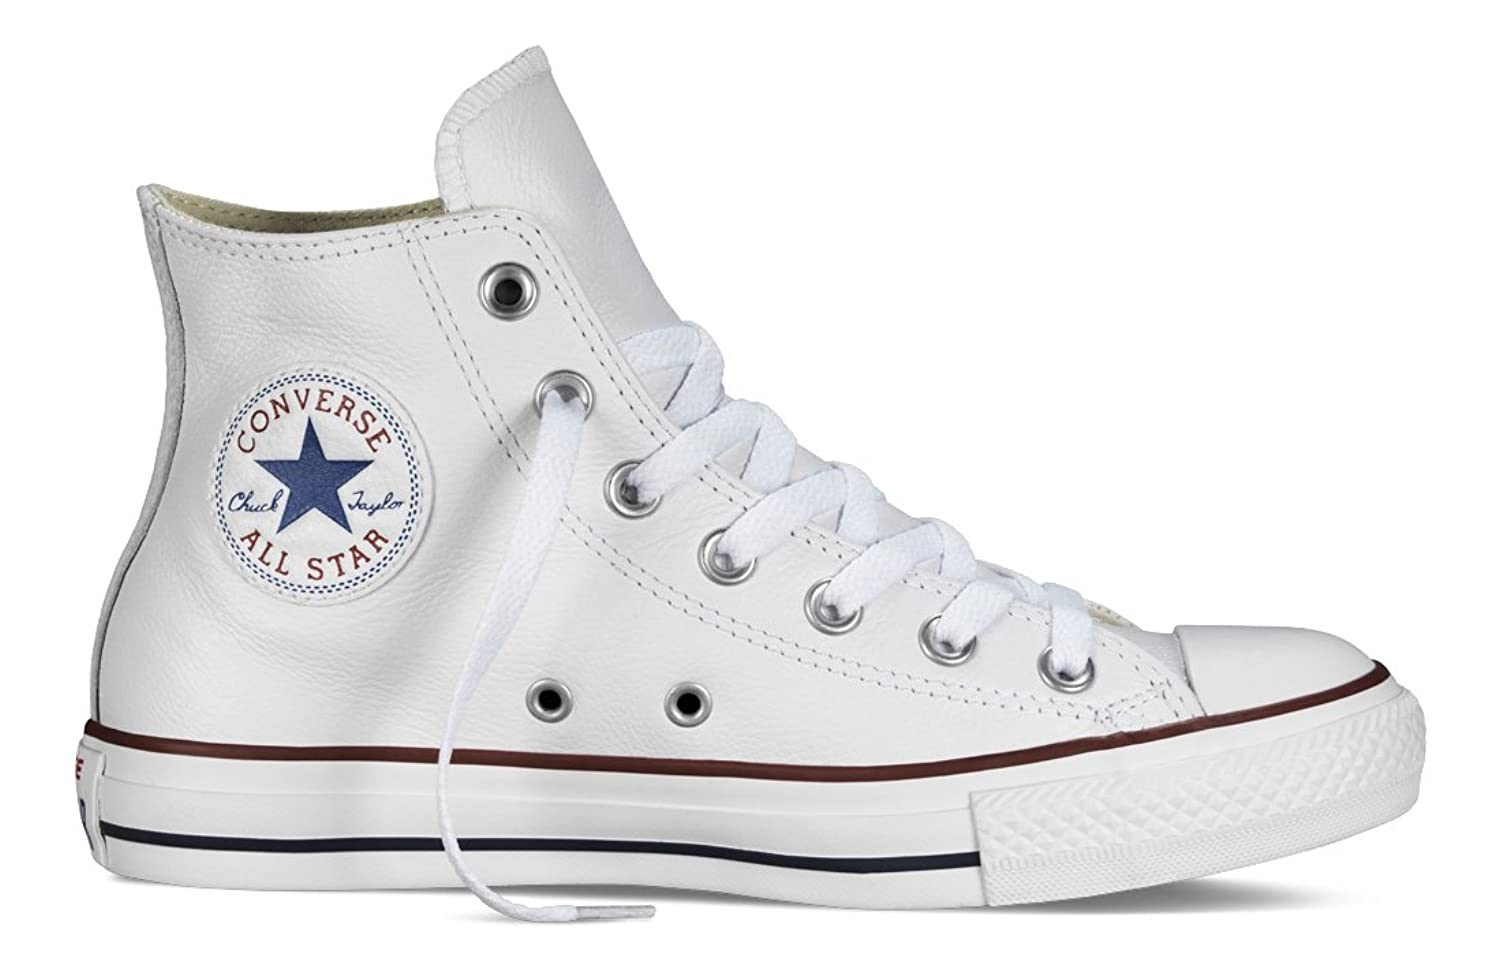 Converse All Star Hi Canvas Seasonal, Chaussures de Gymnastique mixte adulte - bleu - Blu (Radio Blue), 39 EU